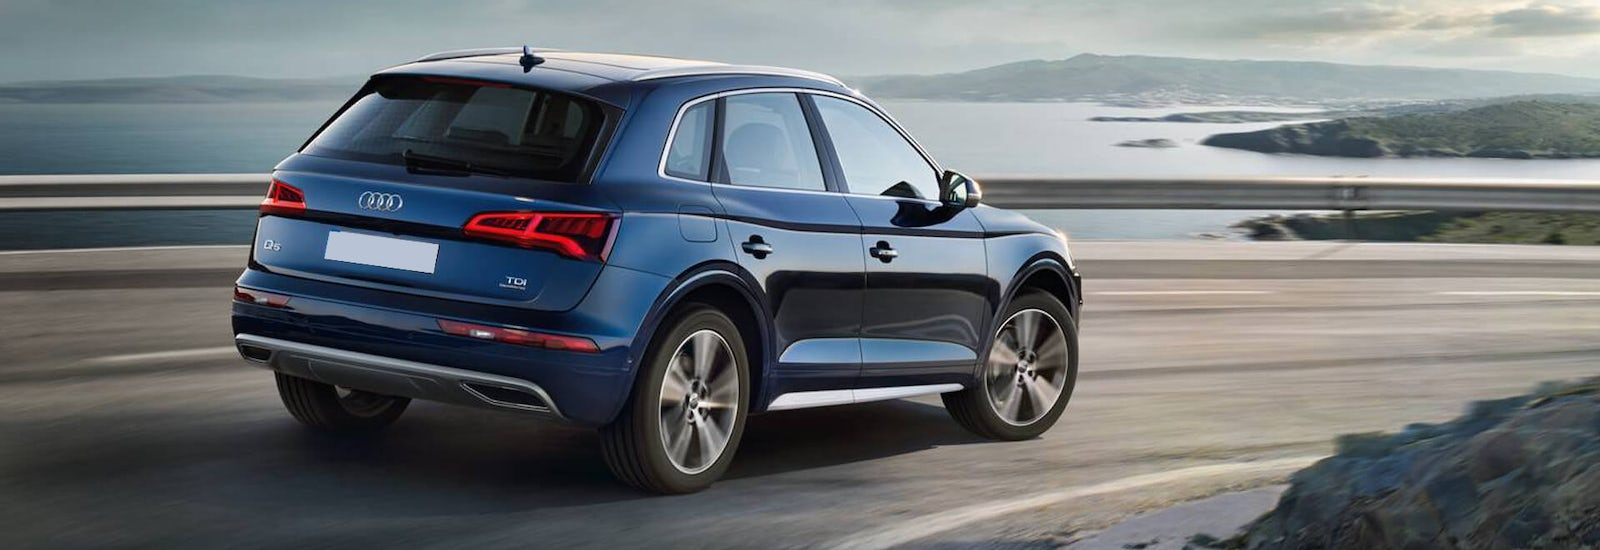 audi q5 dimensions guide uk exterior and interior sizes carwow. Black Bedroom Furniture Sets. Home Design Ideas